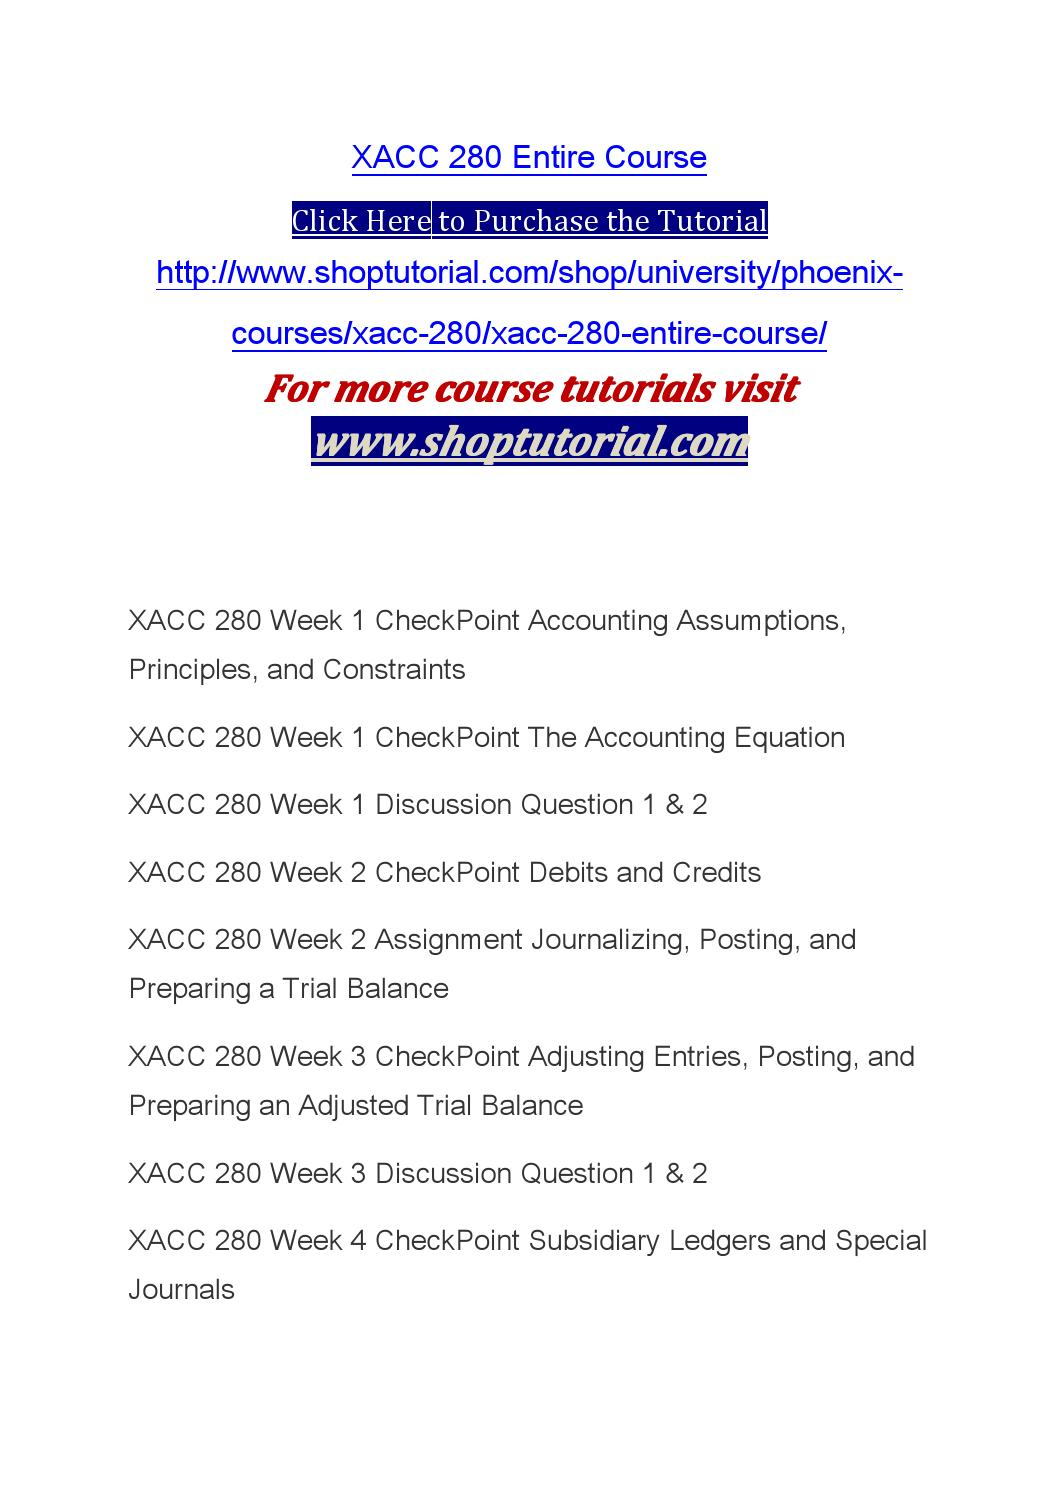 xacc 280 nine steps of the accounting cycle The nine steps of the accounting cycle xacc 280 checkpoint: ratio, vertical, horizontal analyses xacc 280 week seven 7 discussion question 1 xacc 280.